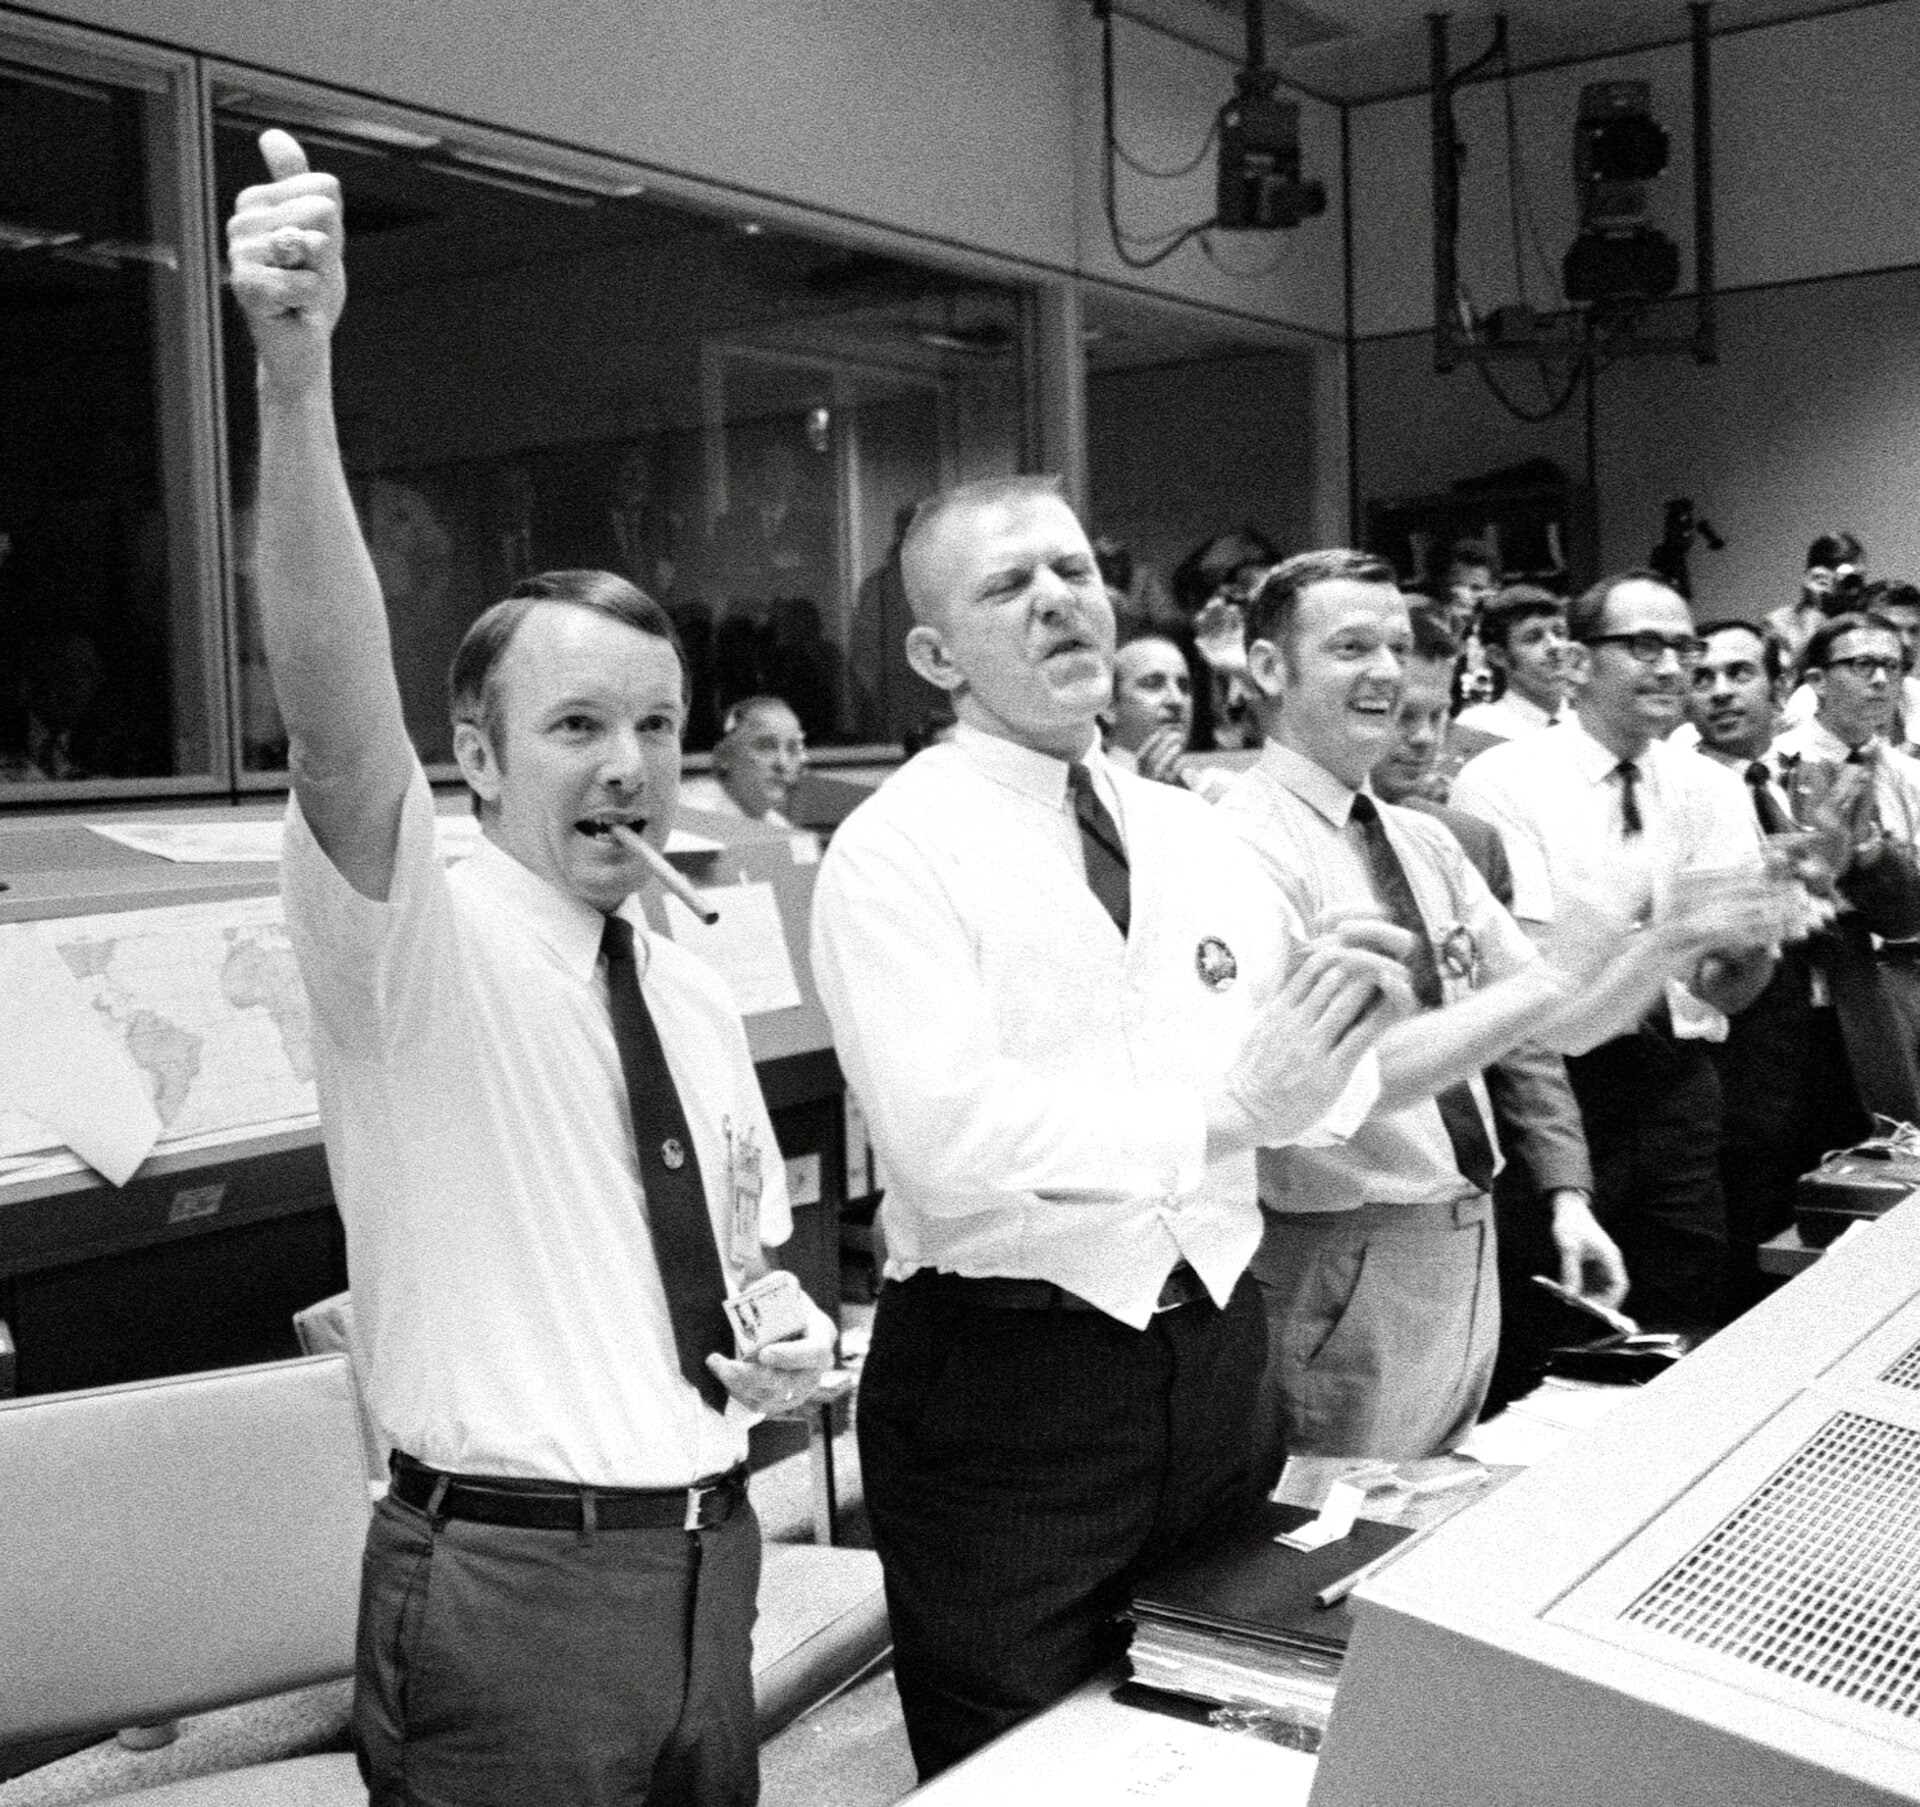 Mission control celebrates successful splashdown